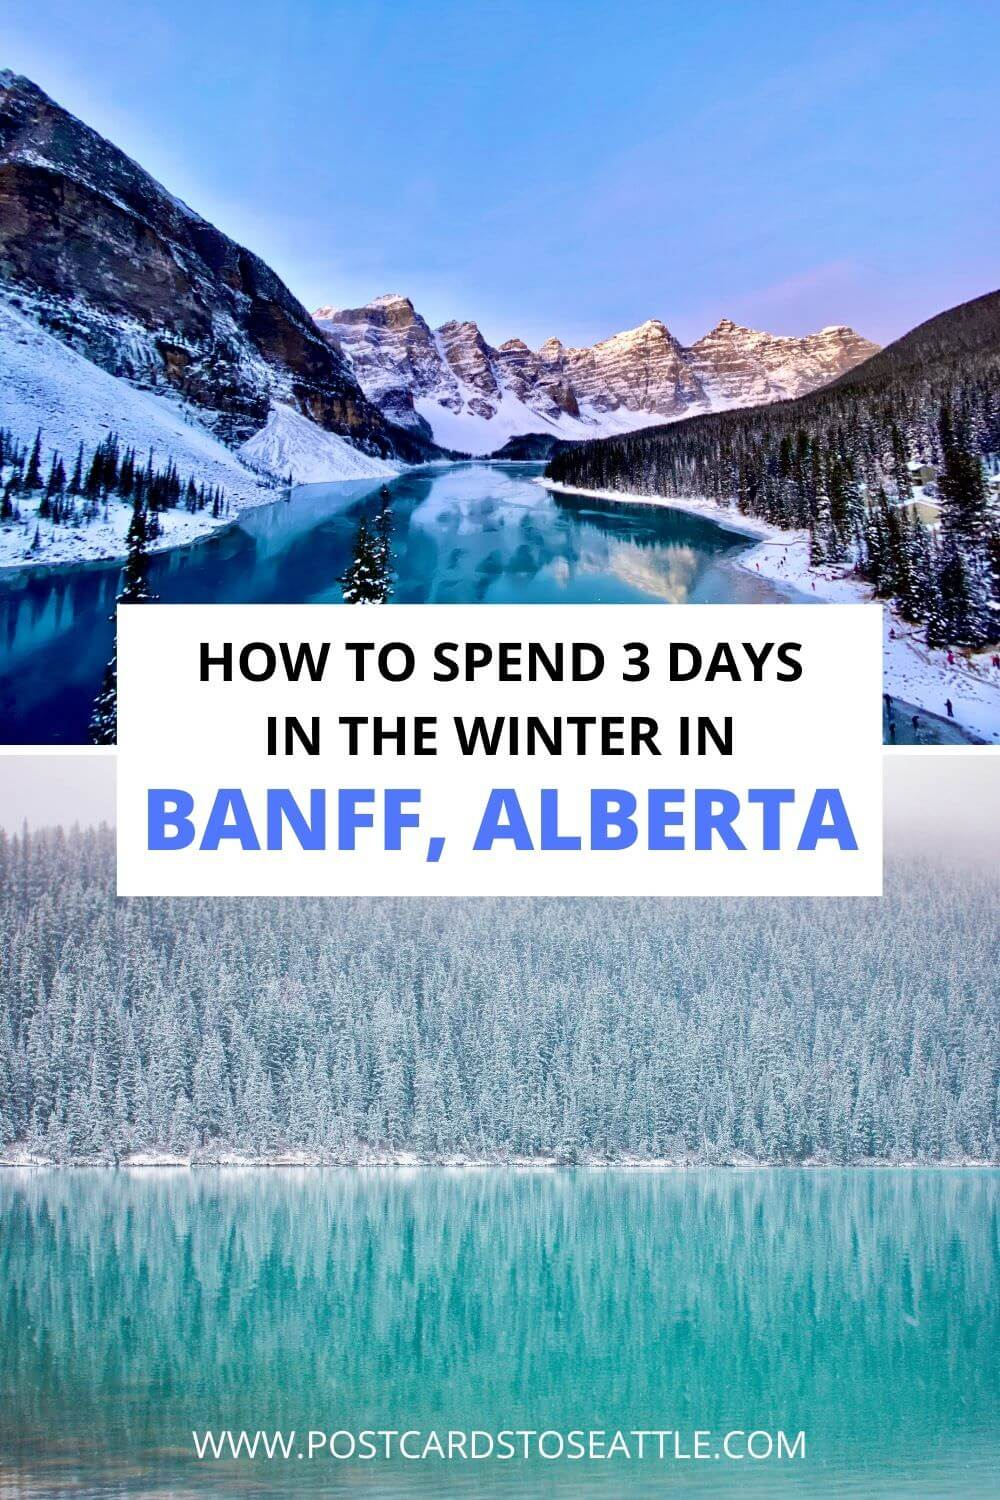 How to Spend 3 Days in Banff in Winter